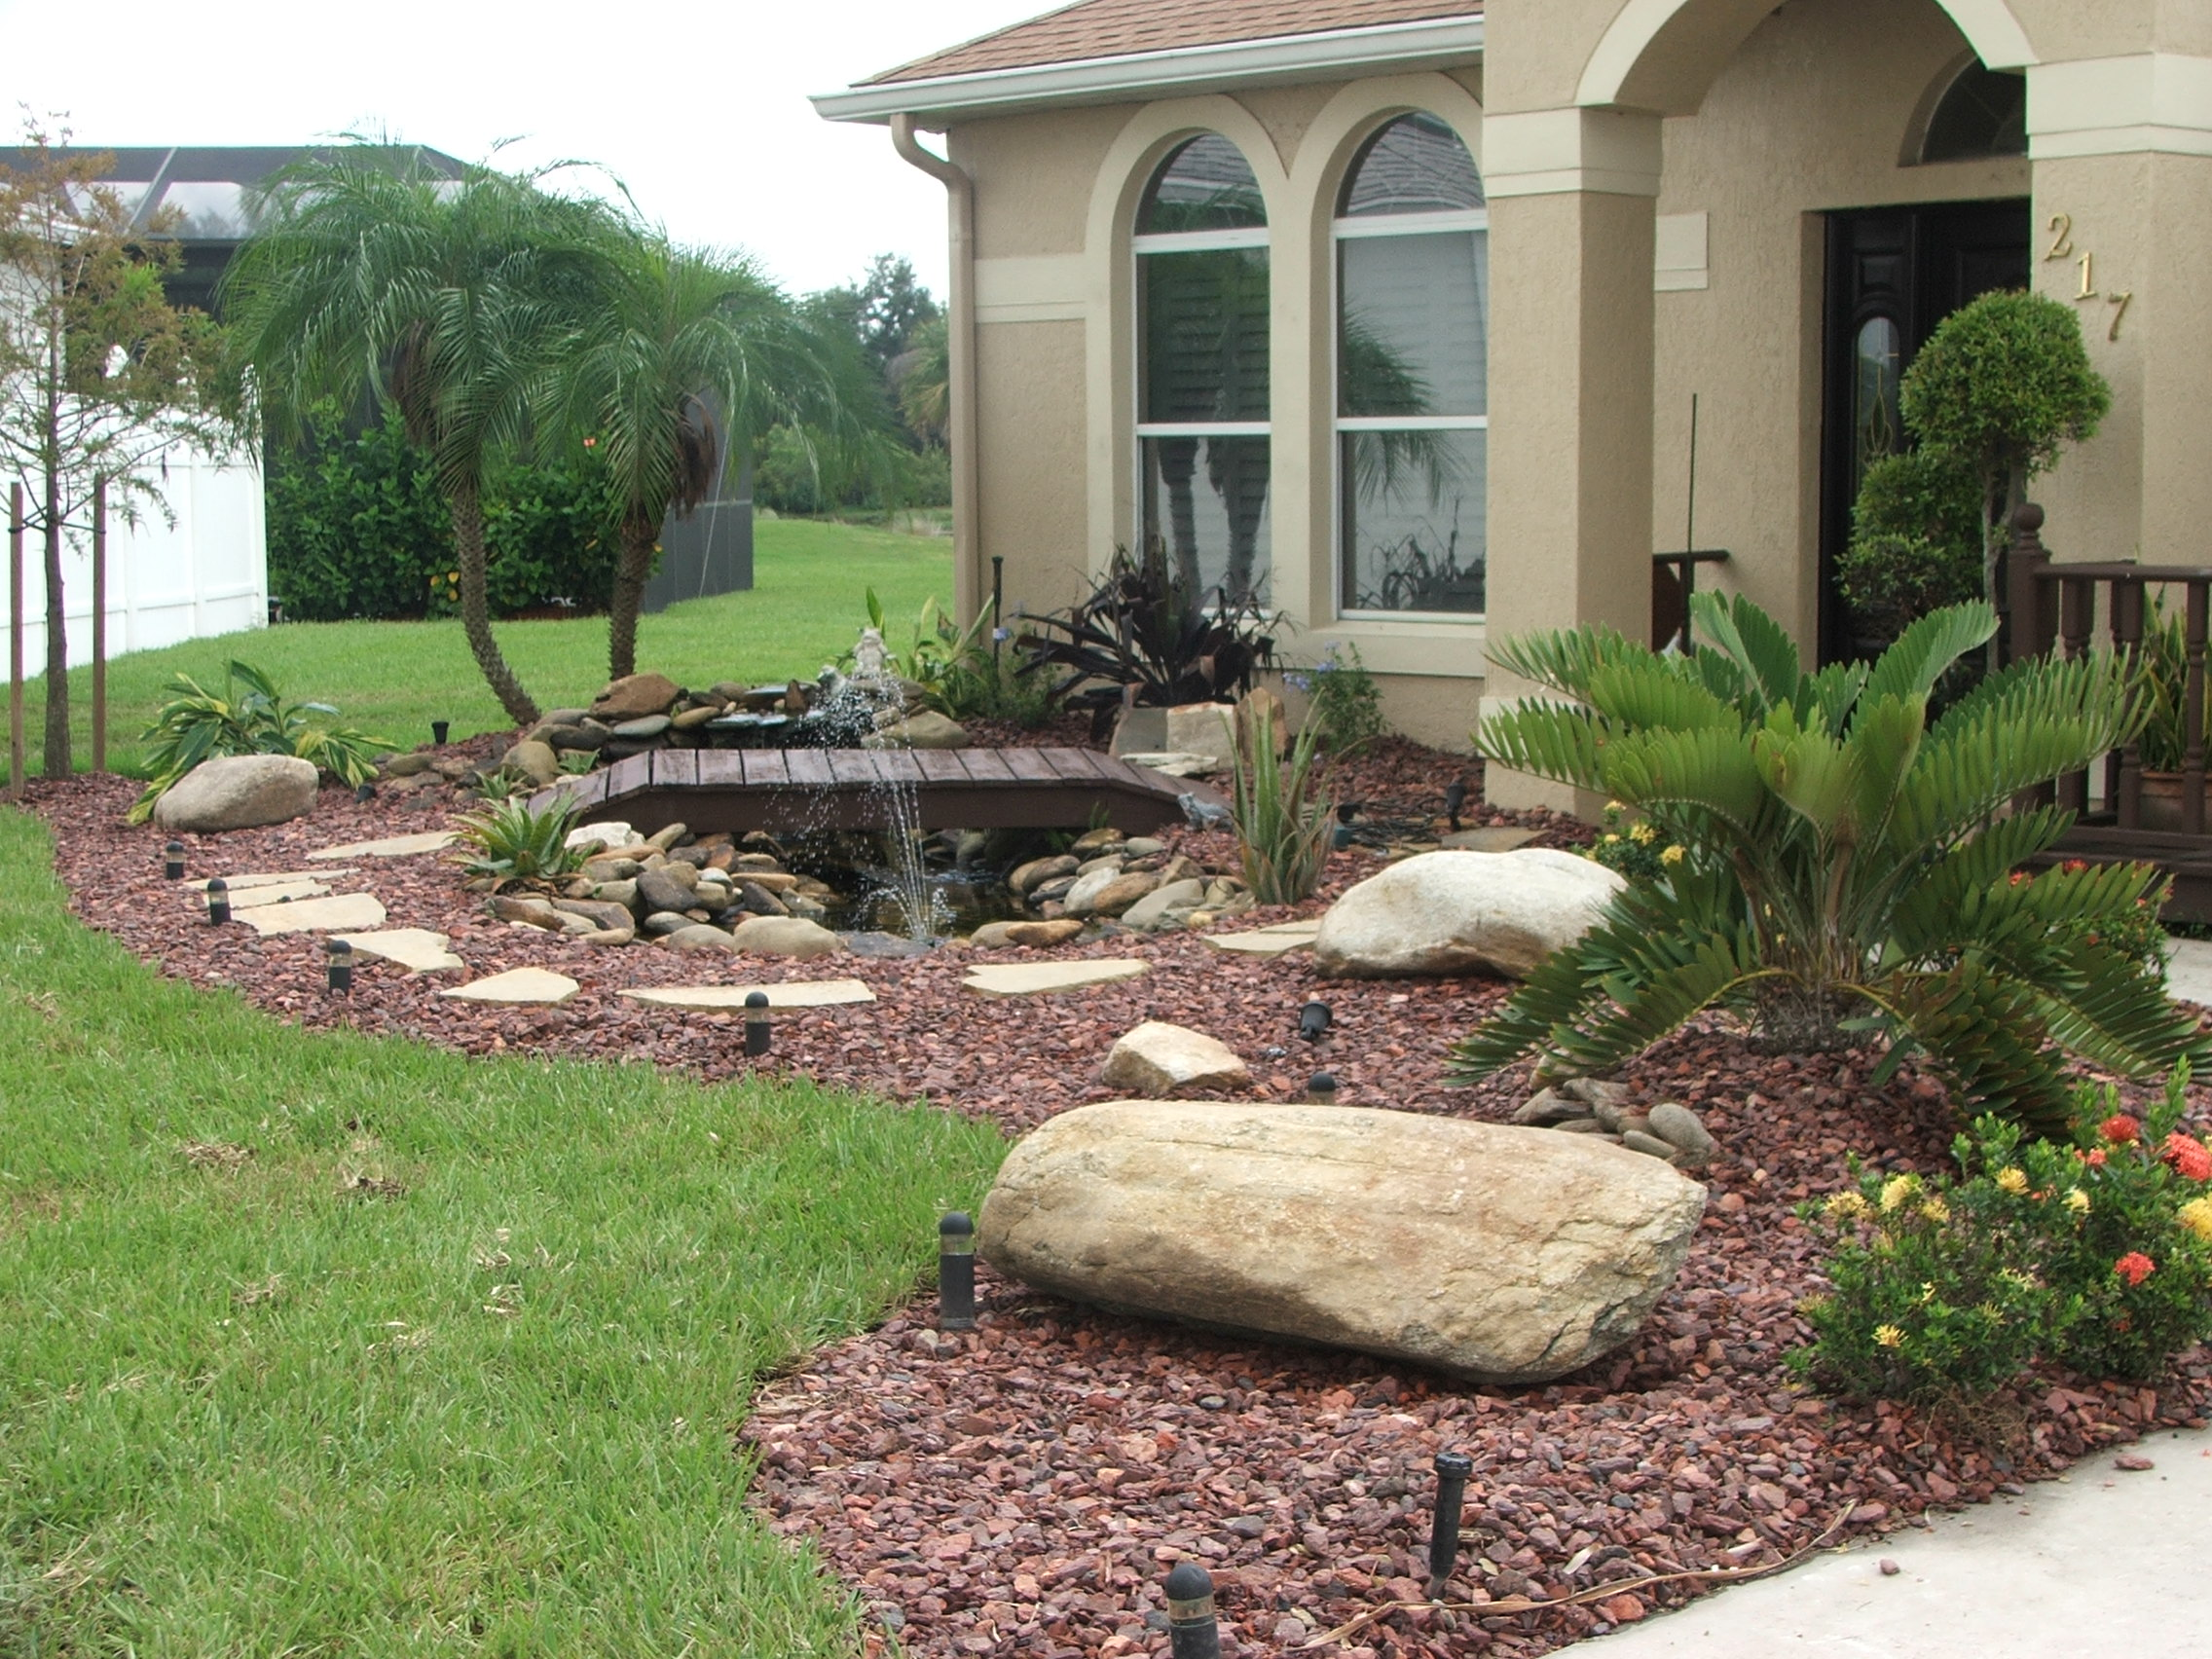 Natural Large Rocks For Landscaping | HomesFeed on Small Garden Ideas With Rocks id=53855